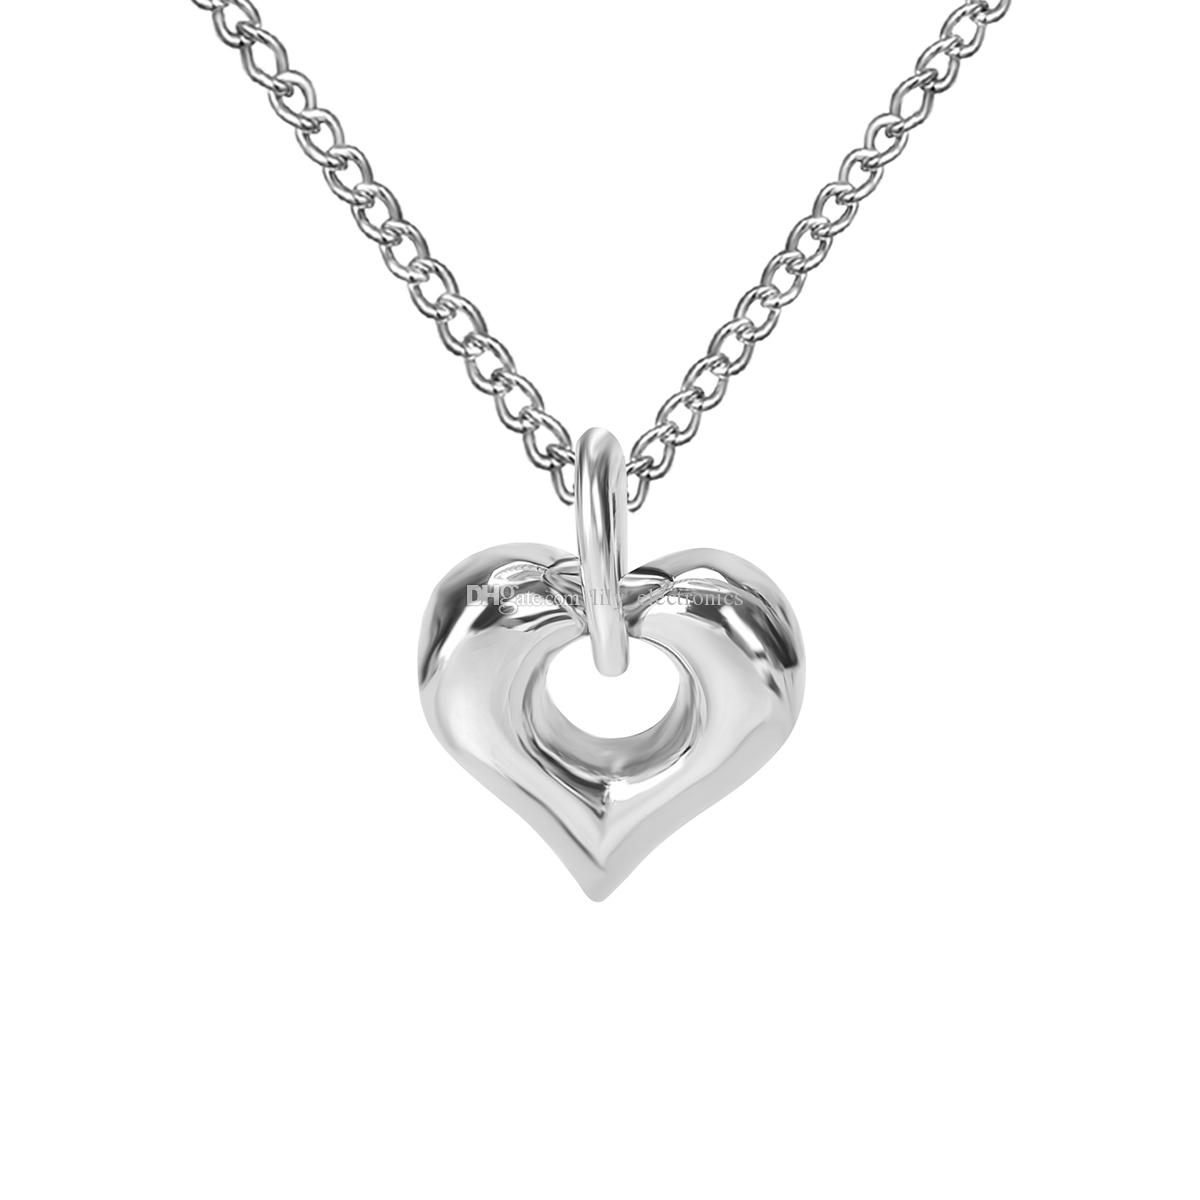 Cremation Jewelry Dolphins Kiss Heart Urn Ashes Necklace Memorial Keepsake Locket Pendant Stainless Steel Funeral Necklace